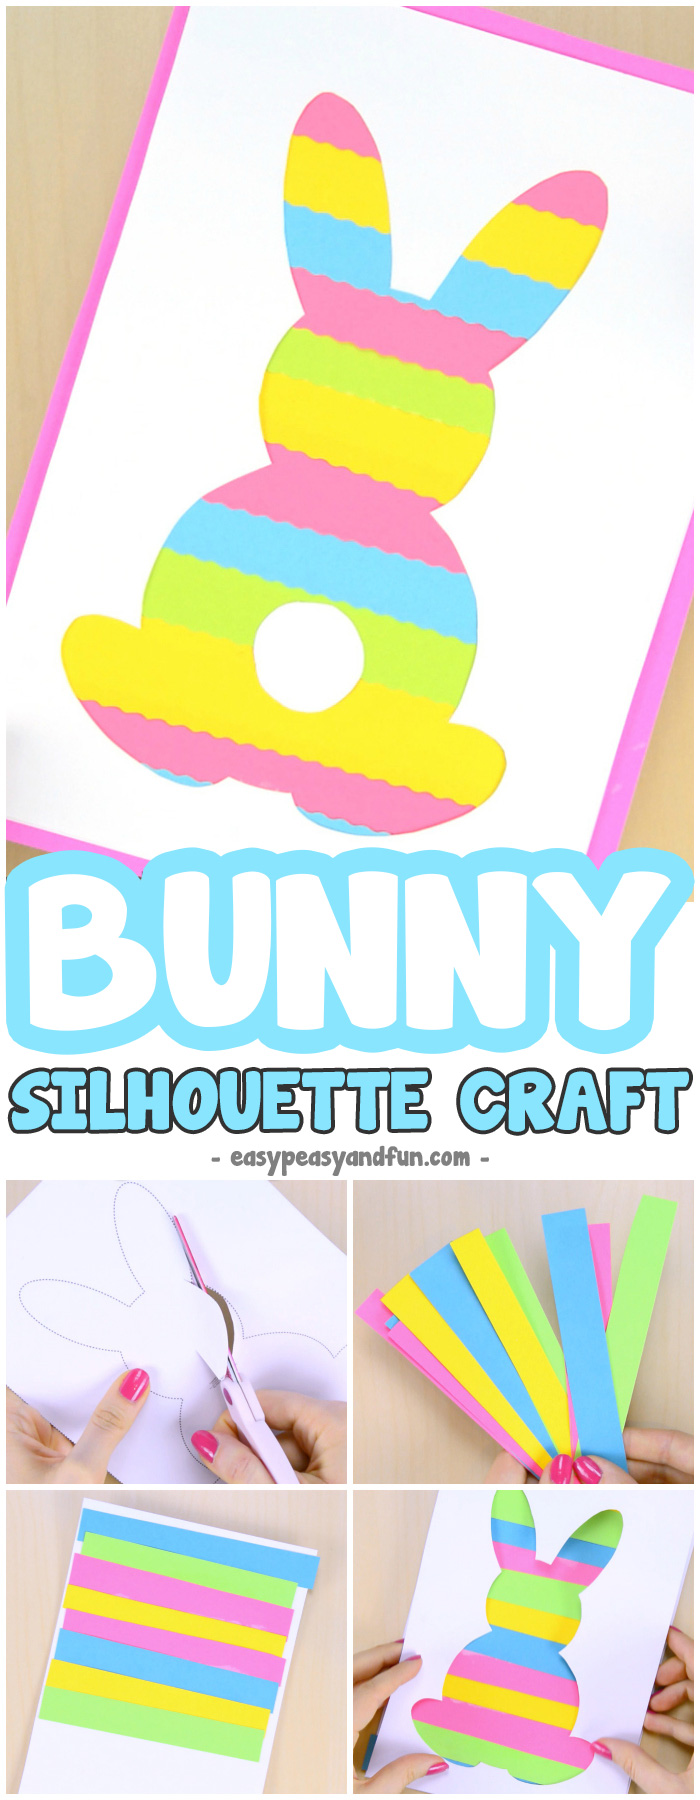 picture regarding Bunny Outline Printable titled Printable Easter Silhouette Craft - Easter Bunny Template